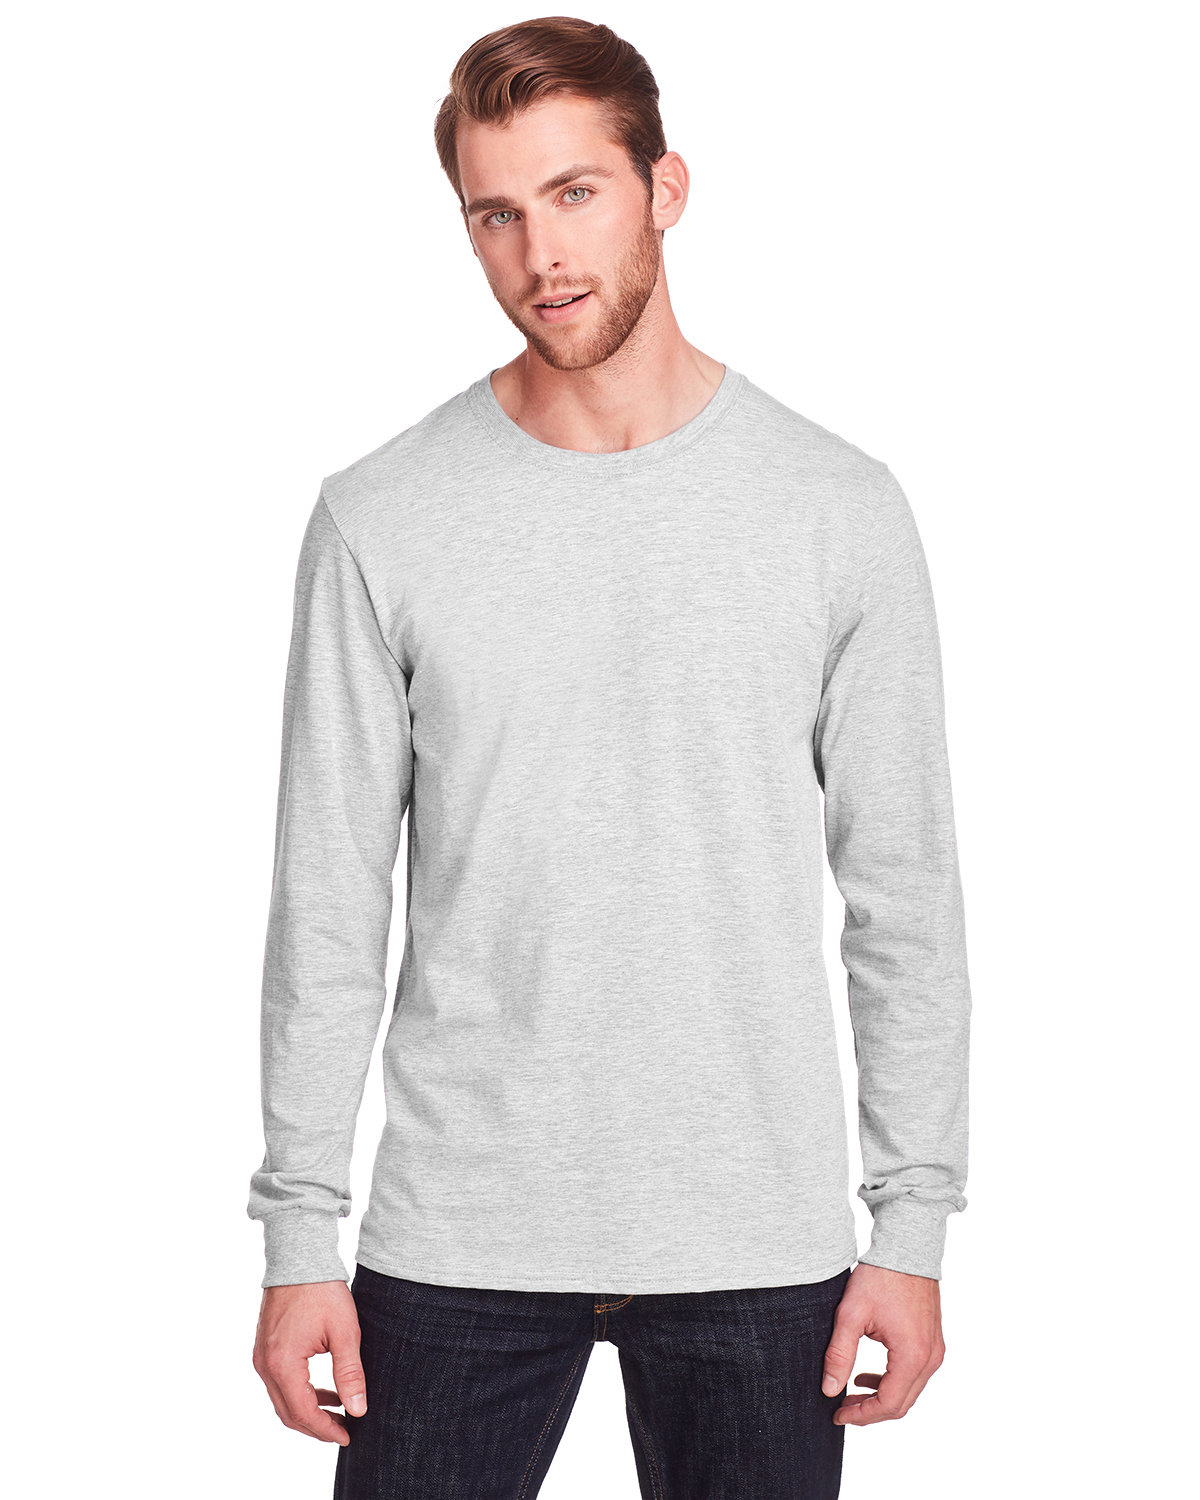 Fruit of the Loom Adult ICONIC™ Long Sleeve T-Shirt OATMEAL HEATHER